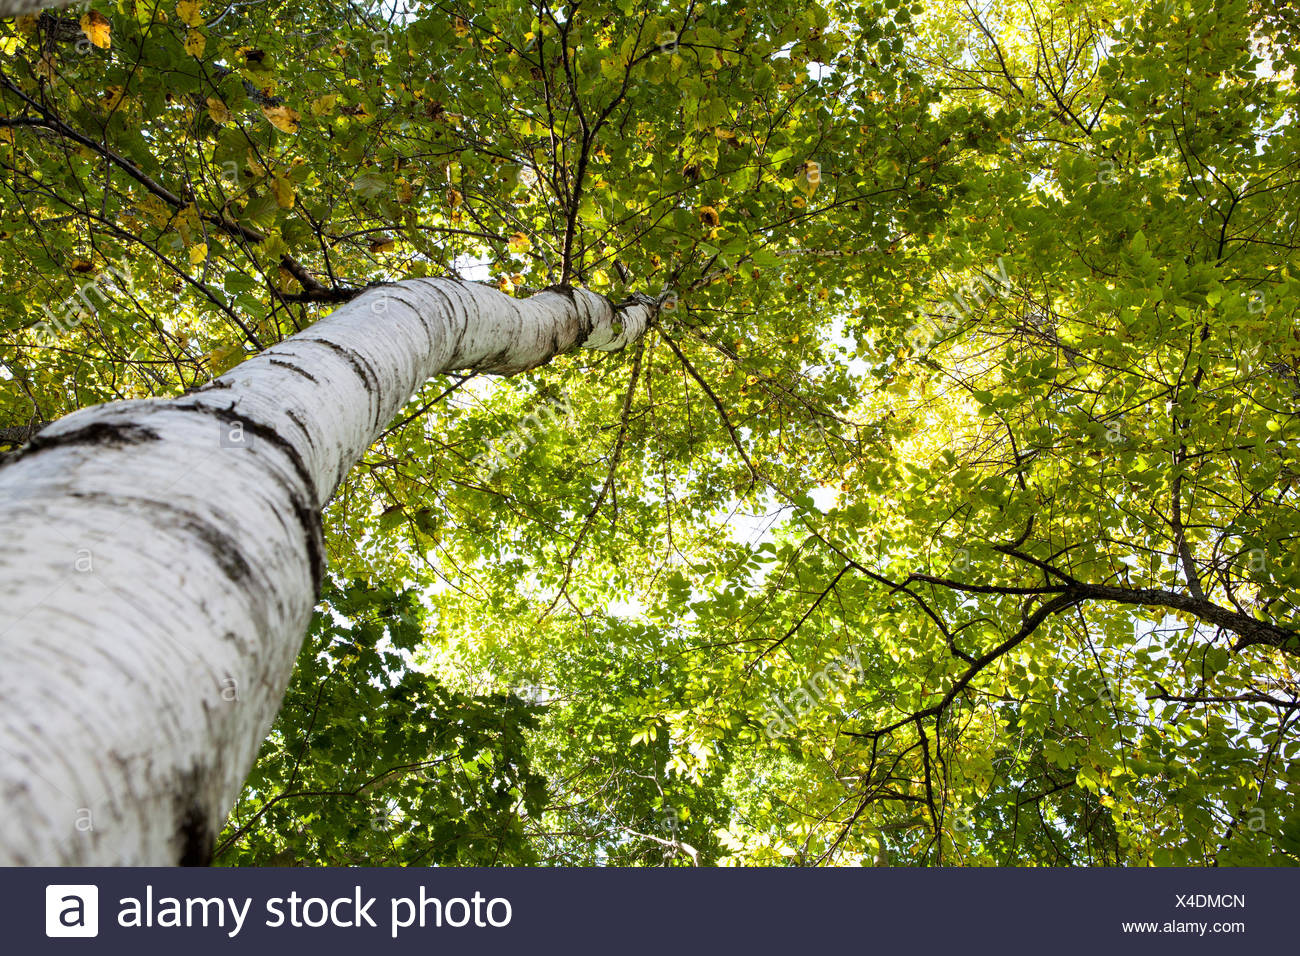 Birch trees, a broadleaved deciduous hardwood tree common in central Maine. - Stock Image